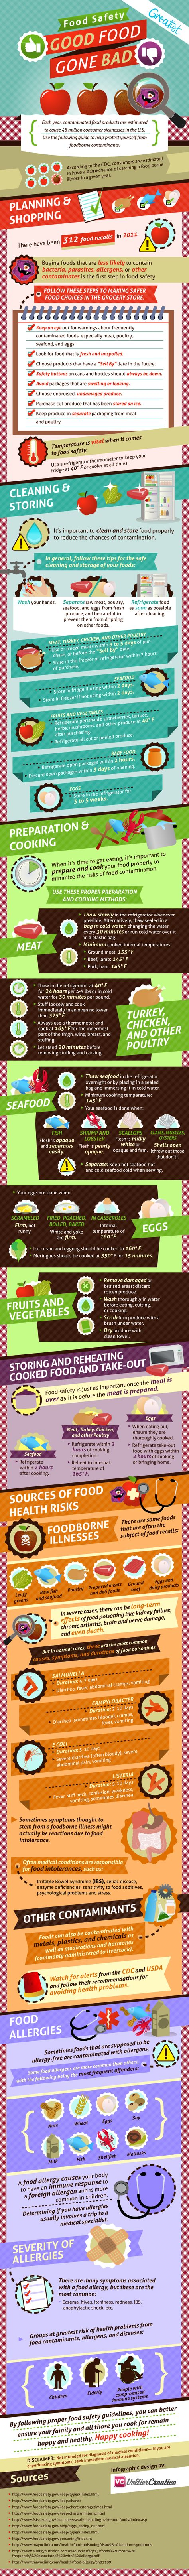 hight resolution of 170 FACS - Food Safety ideas   food safety